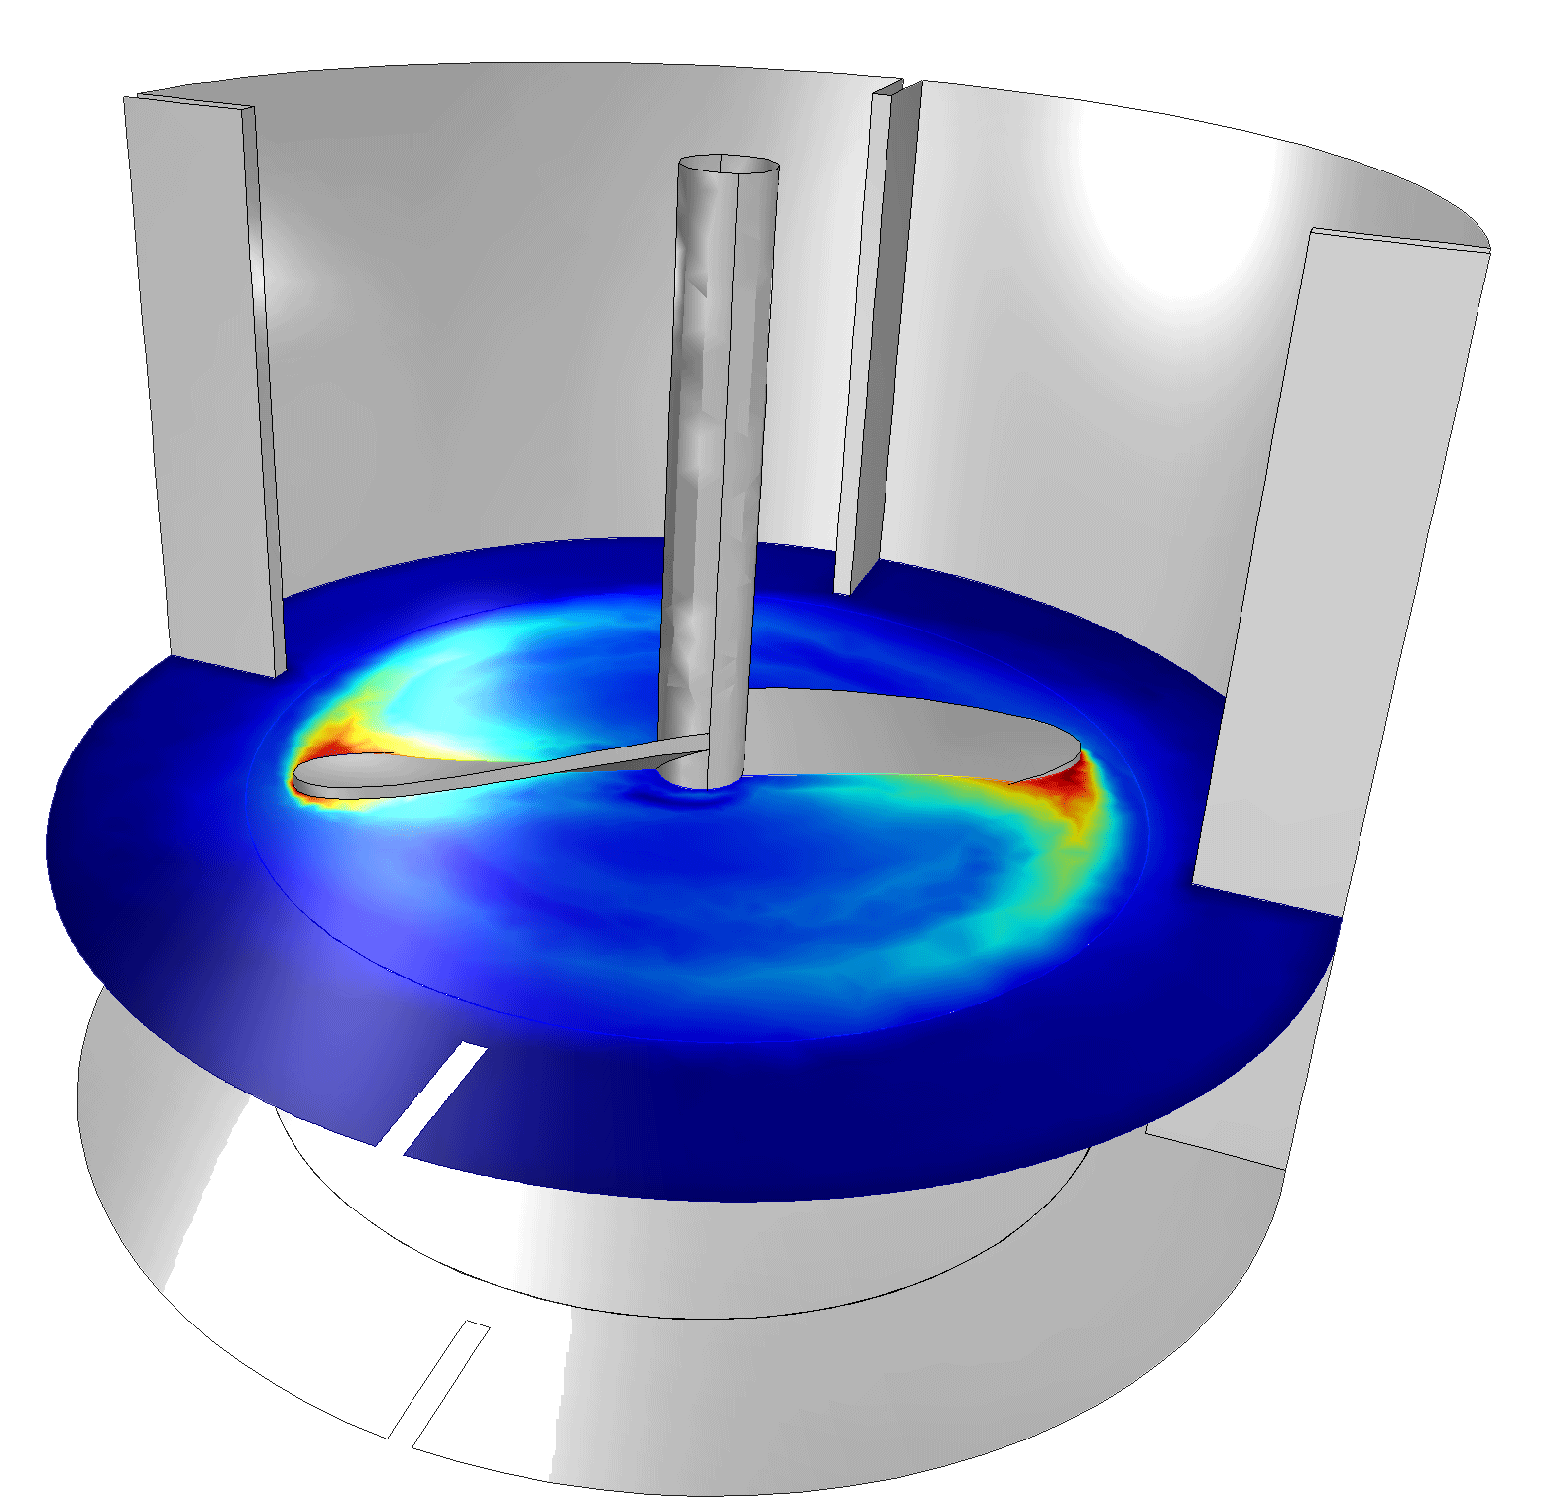 Flow field in a stirred, baffled mixer using the Rotating Machinery interface.